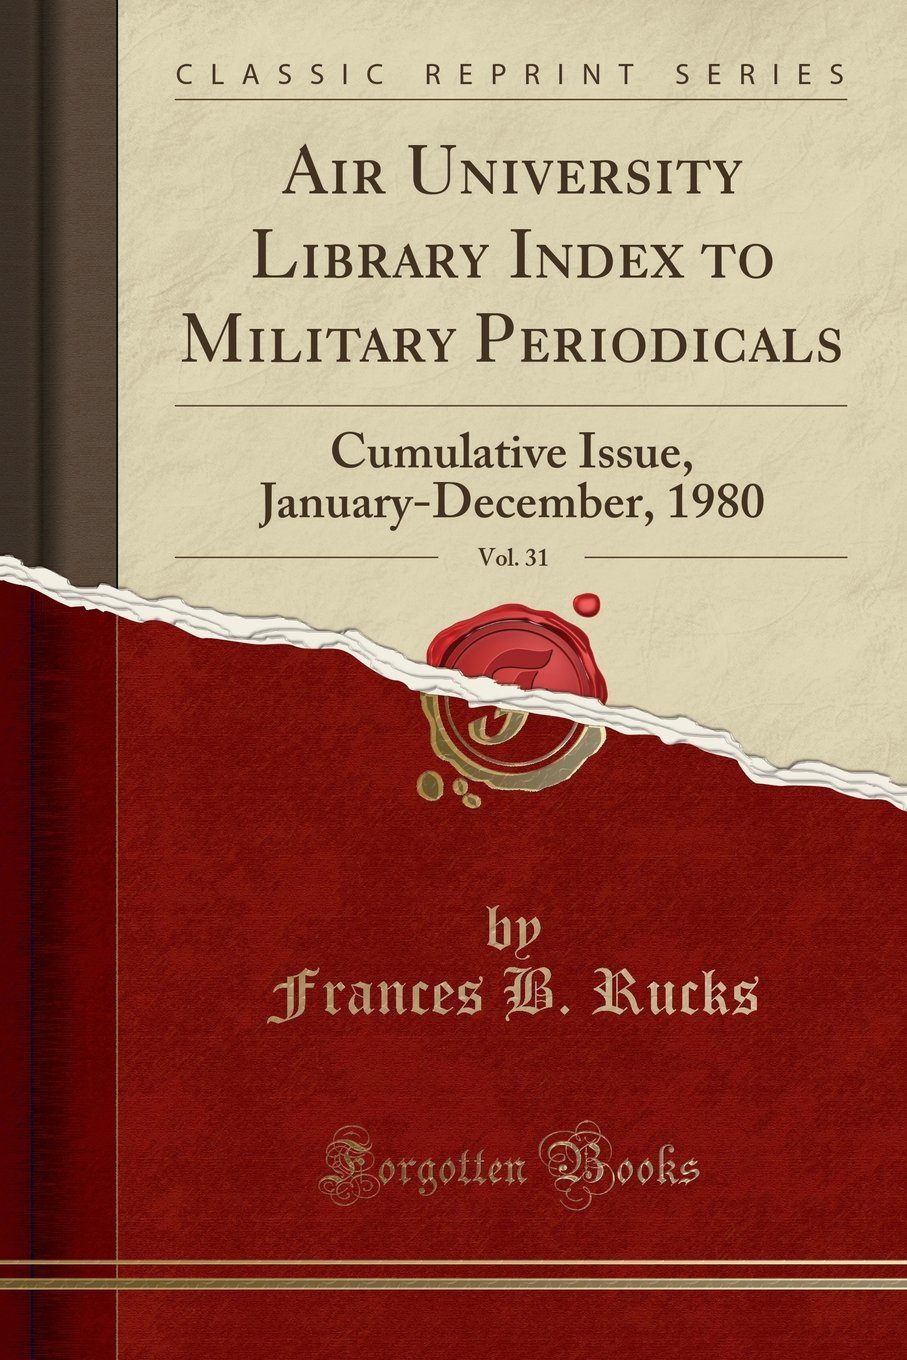 Download Air University Library Index to Military Periodicals, Vol. 31: Cumulative Issue, January-December, 1980 (Classic Reprint) ebook